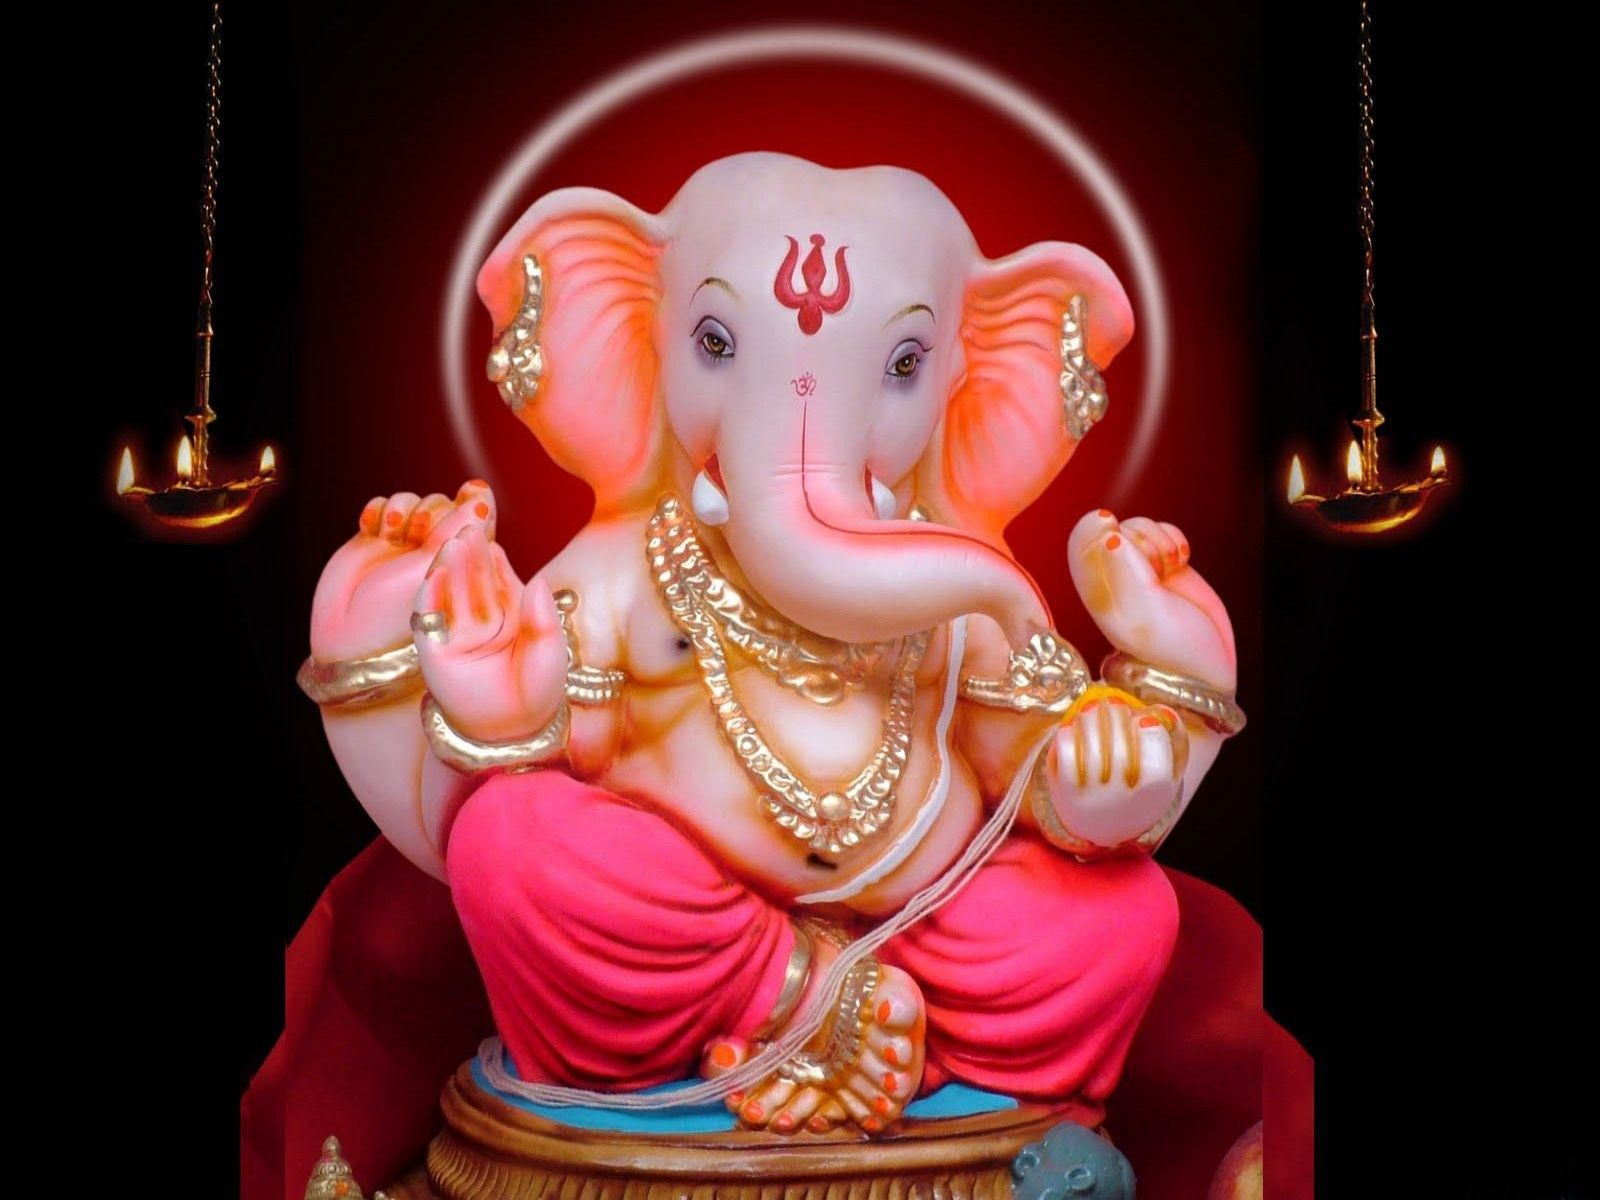 3d wallpaper of lord ganesha hd download 3d wallpaper of lord ganesha download 3d wallpaper of lord ganesha hd download from the above display